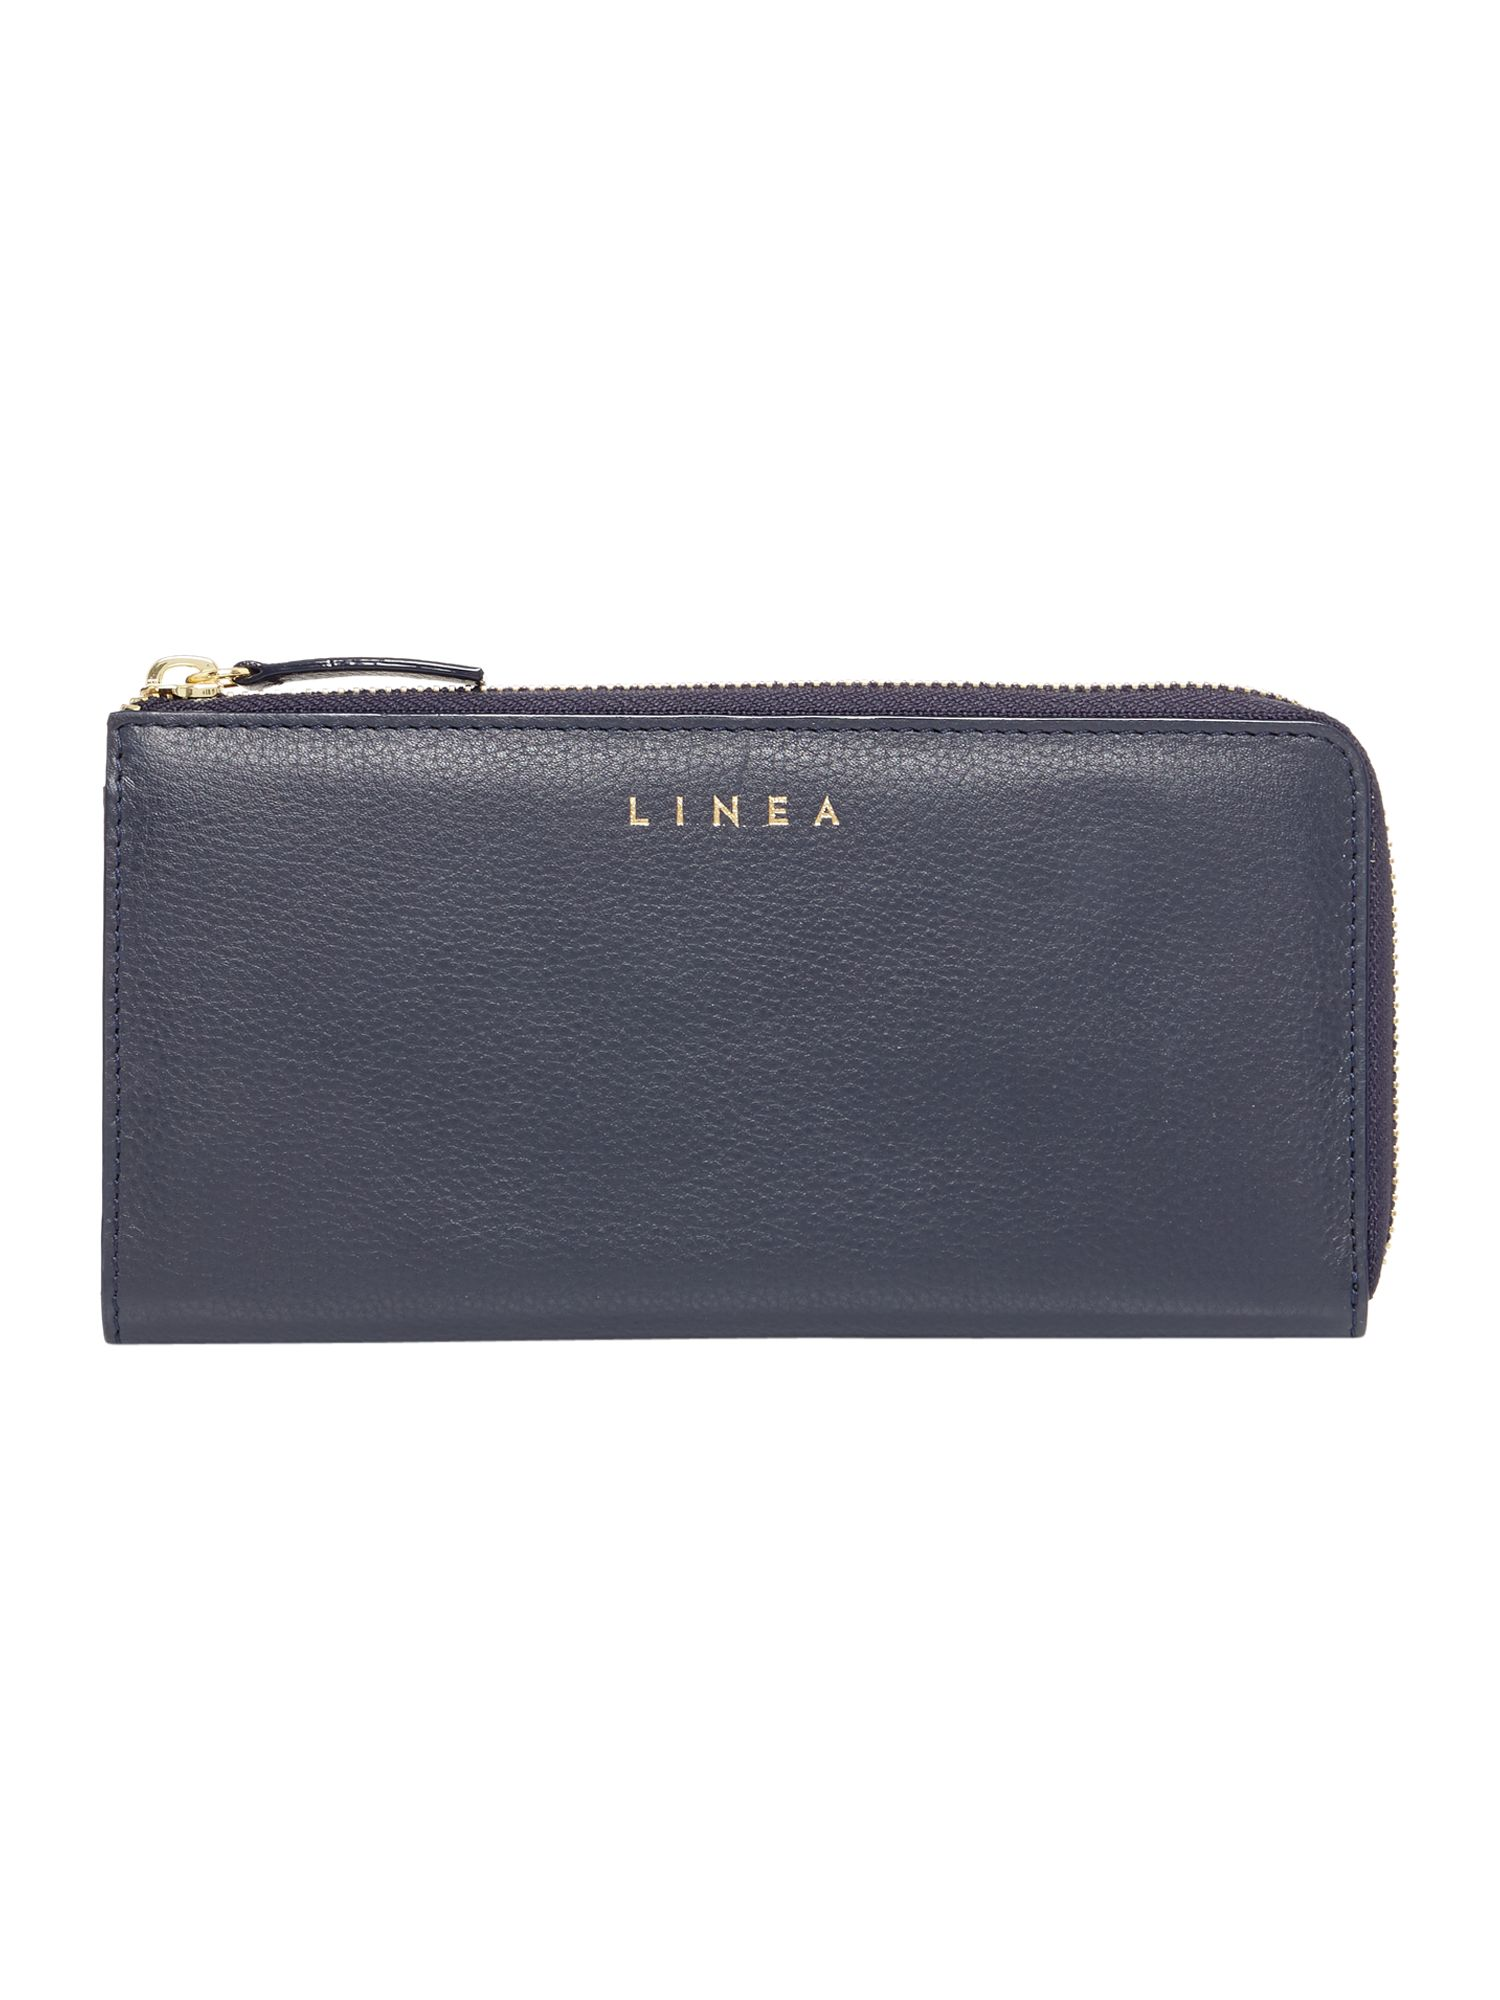 Linea Bennie Zip Around Leather Purse, Blue Blue